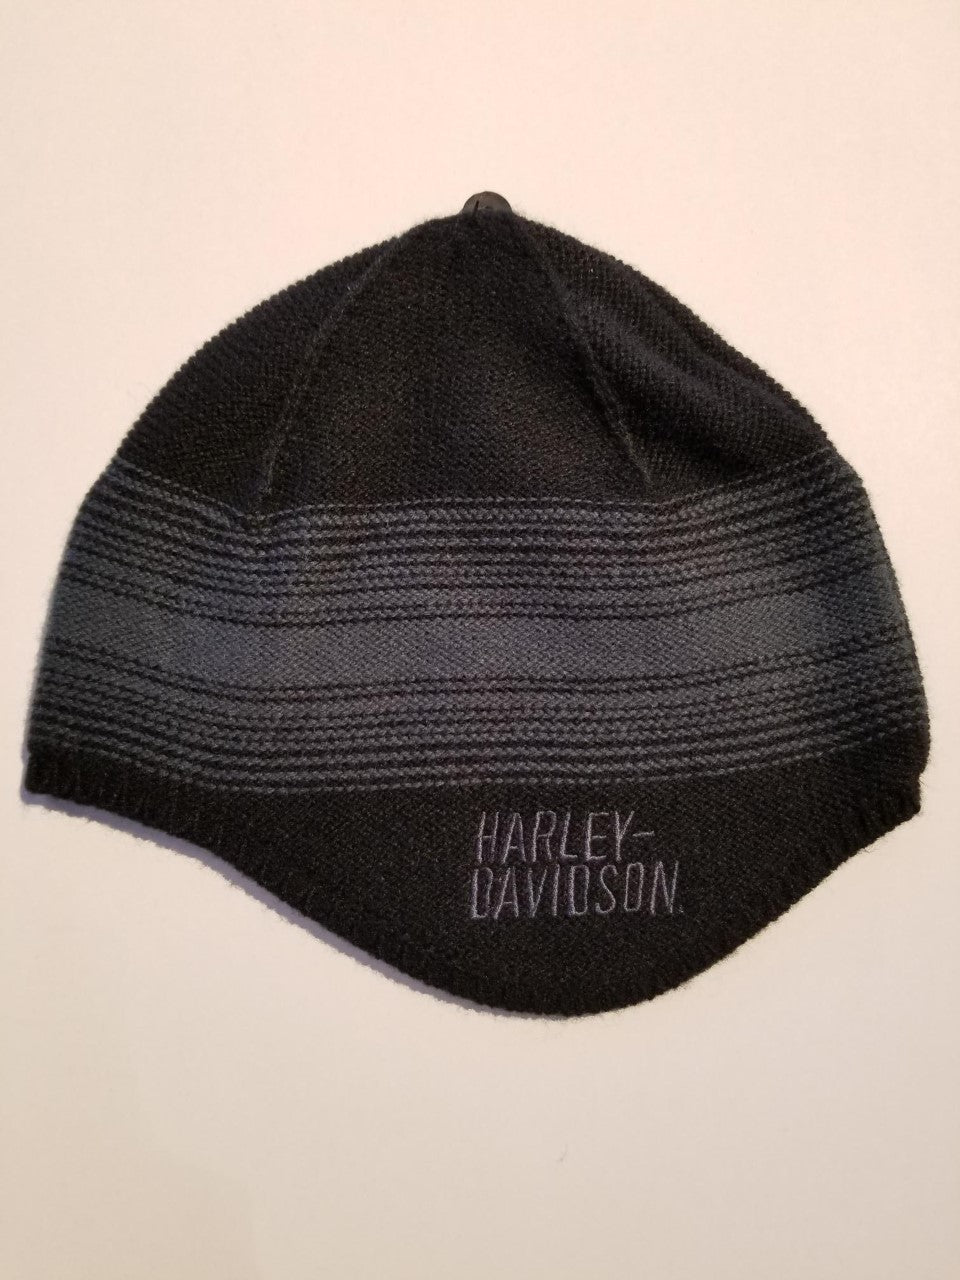 Harley-Davidson hat-knit, fleece lined september del/men's black